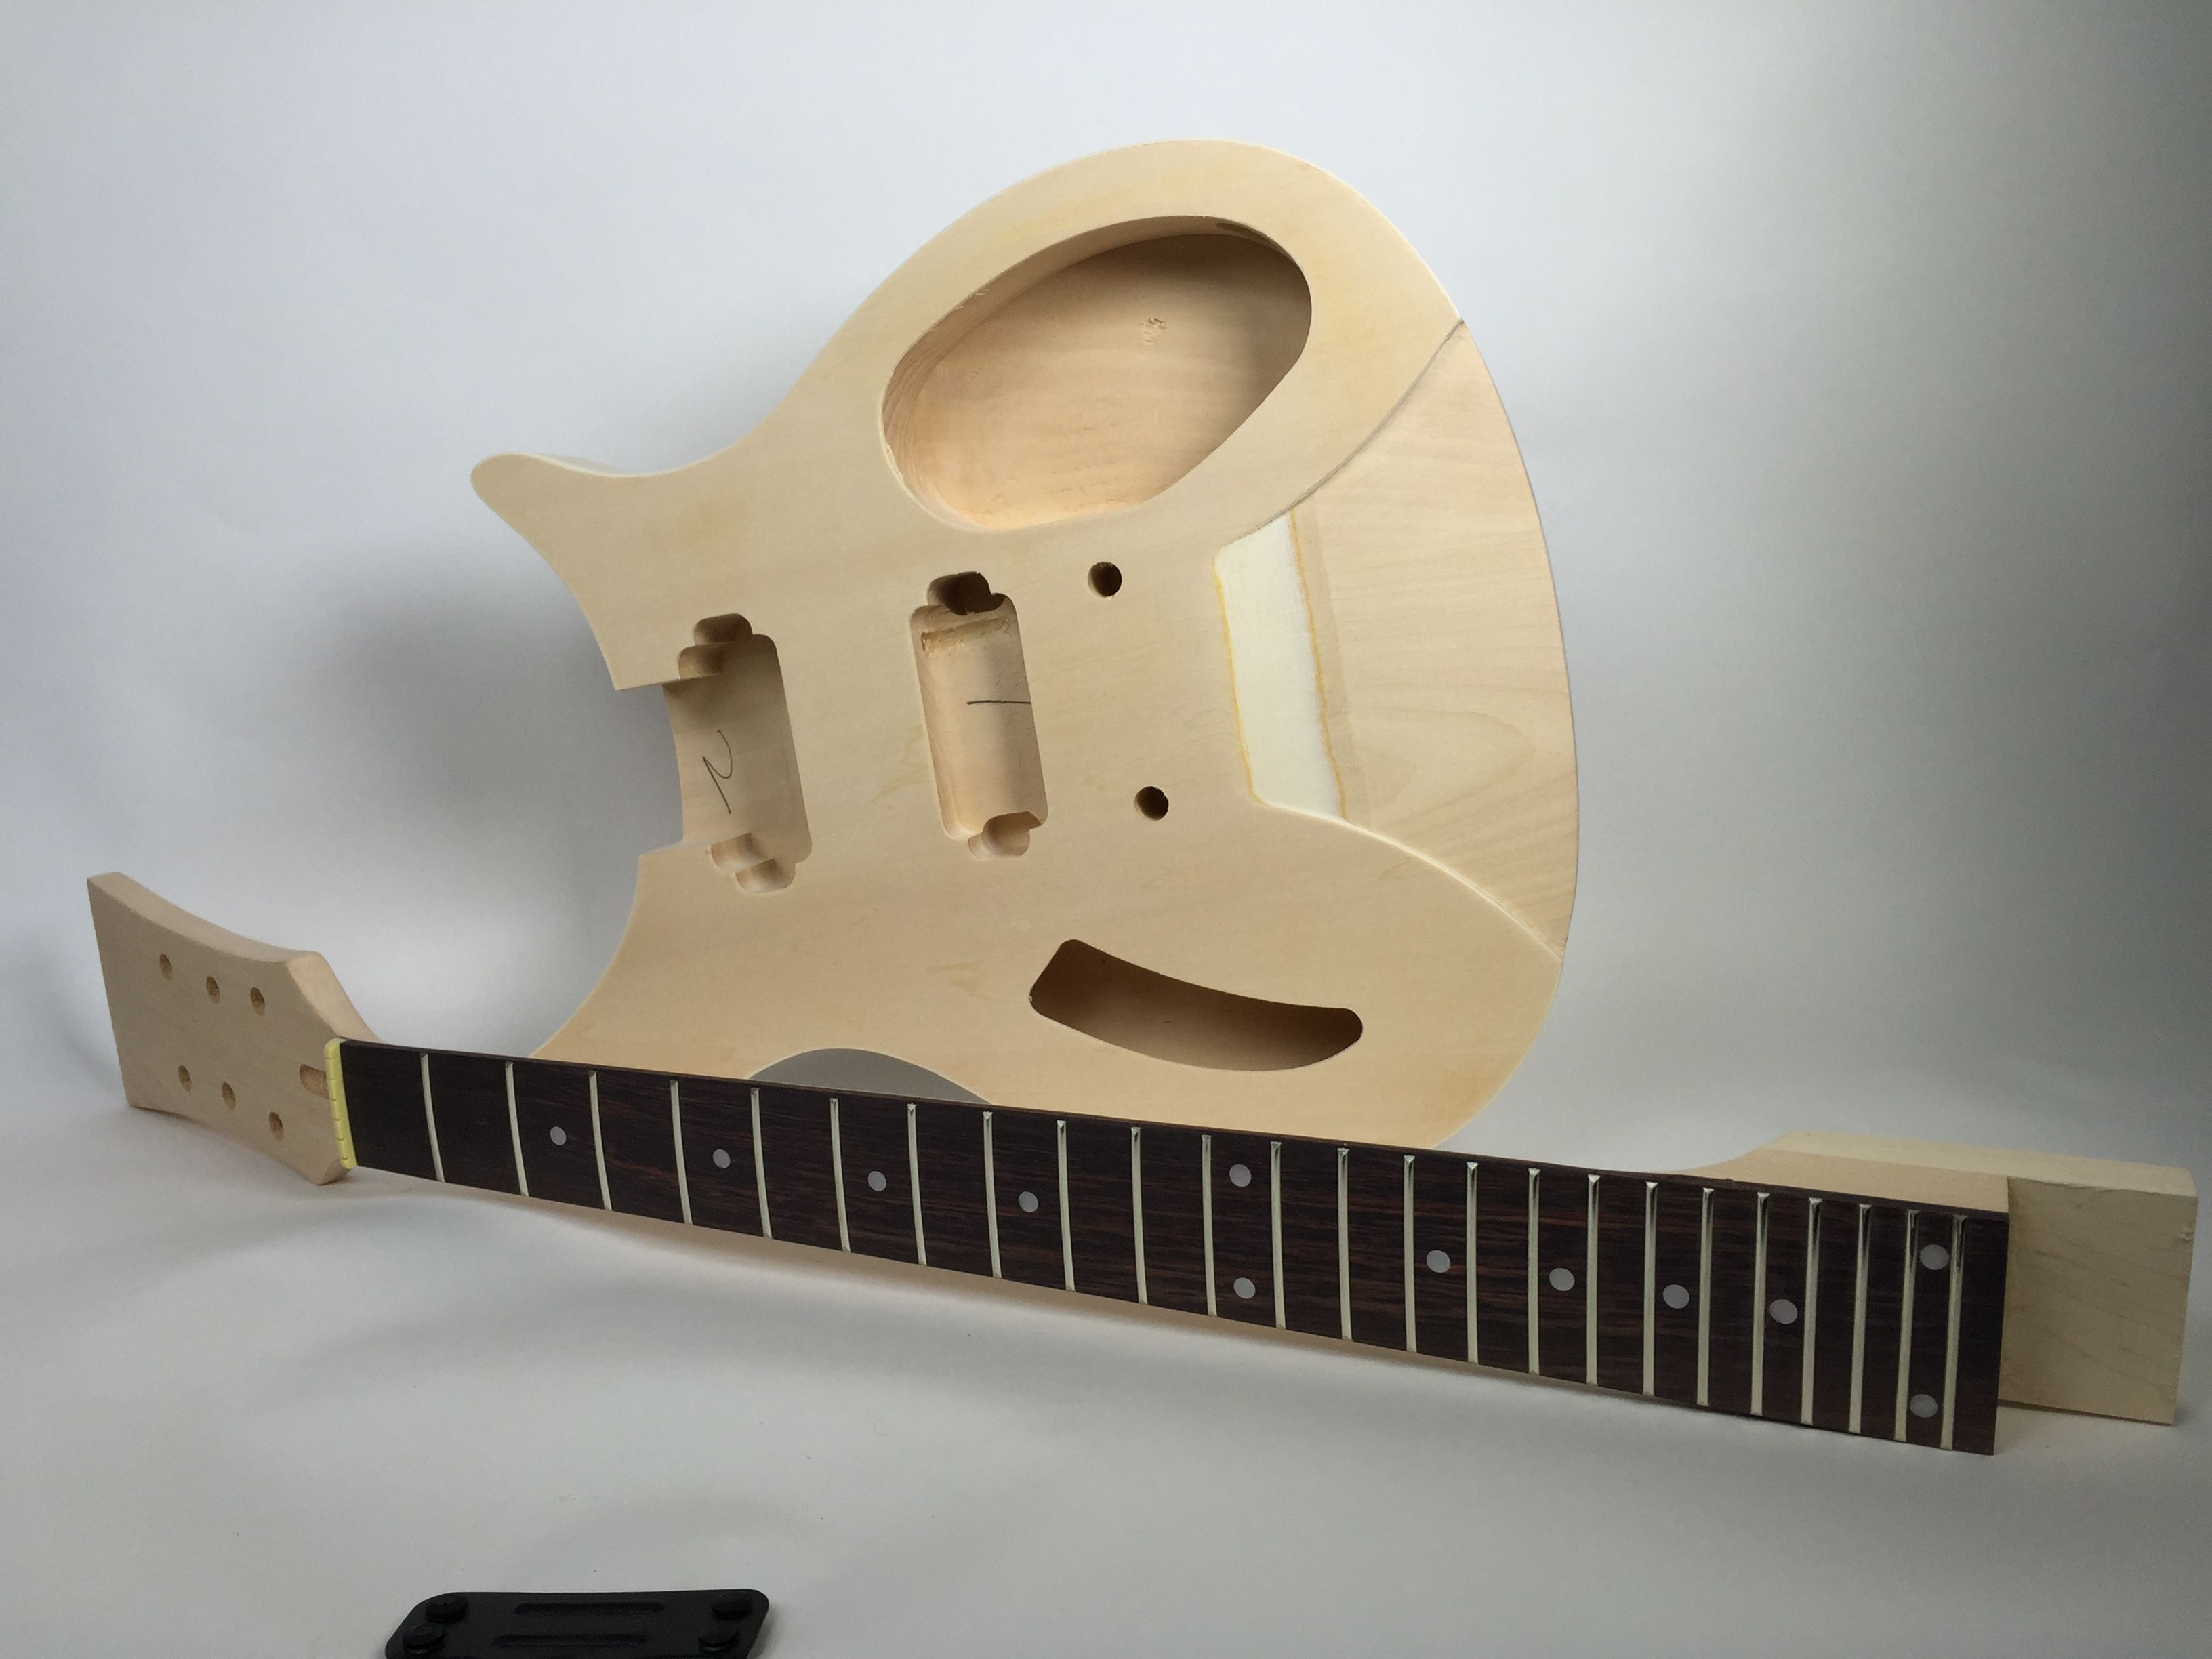 diy electric guitar kit solid body r style build your own guitar kit effects electric guitar. Black Bedroom Furniture Sets. Home Design Ideas